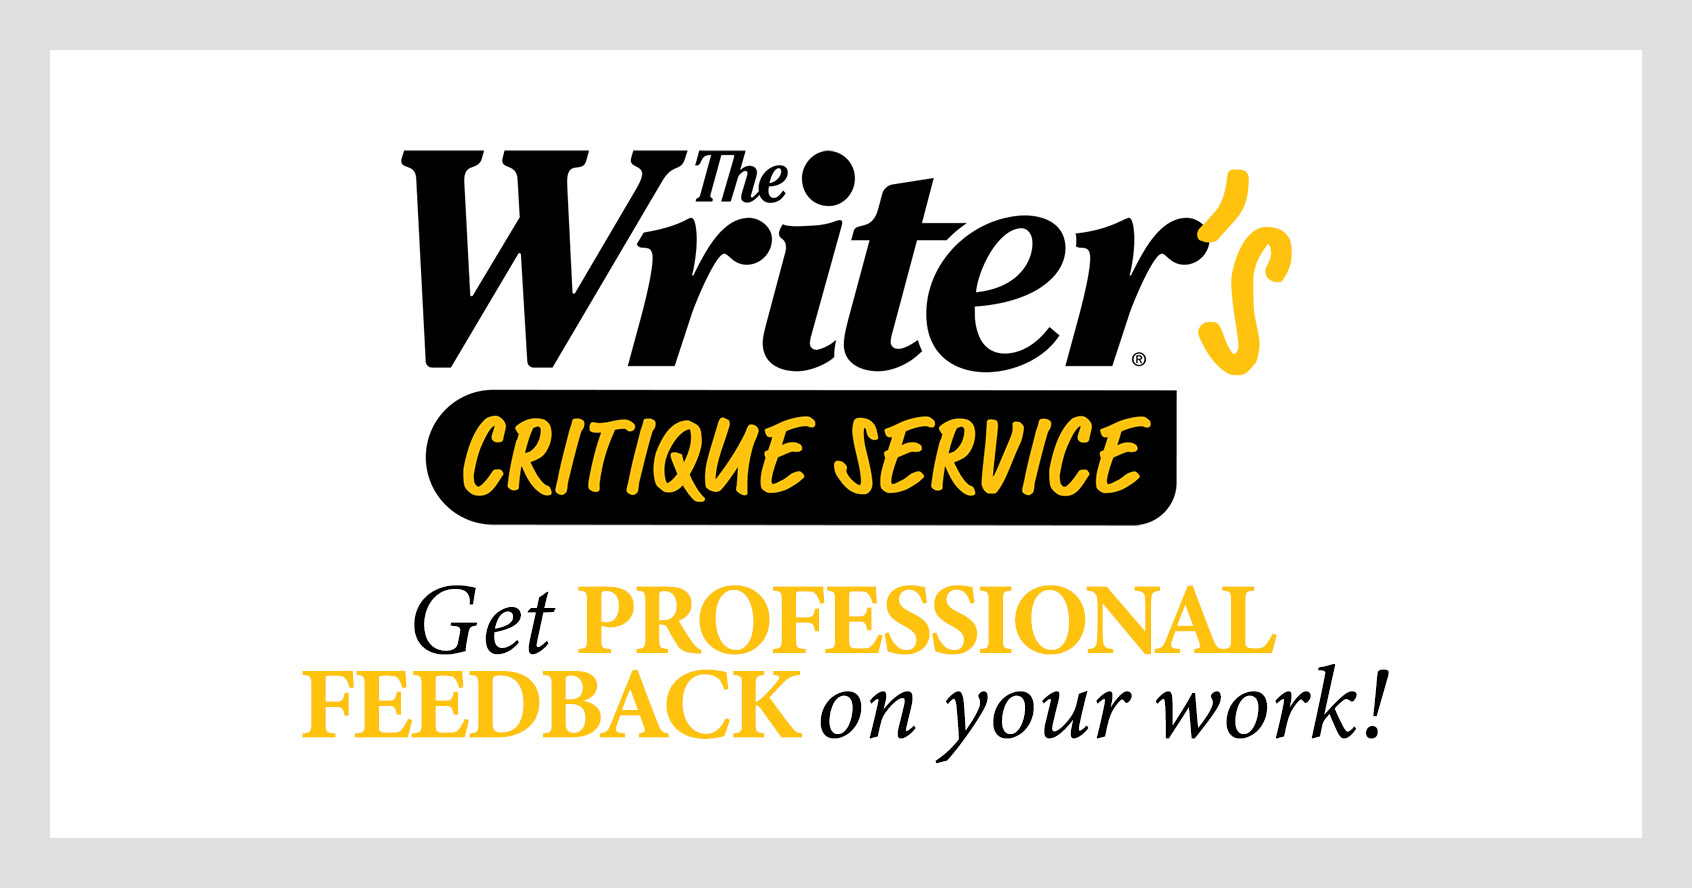 The Writer's Critique Service